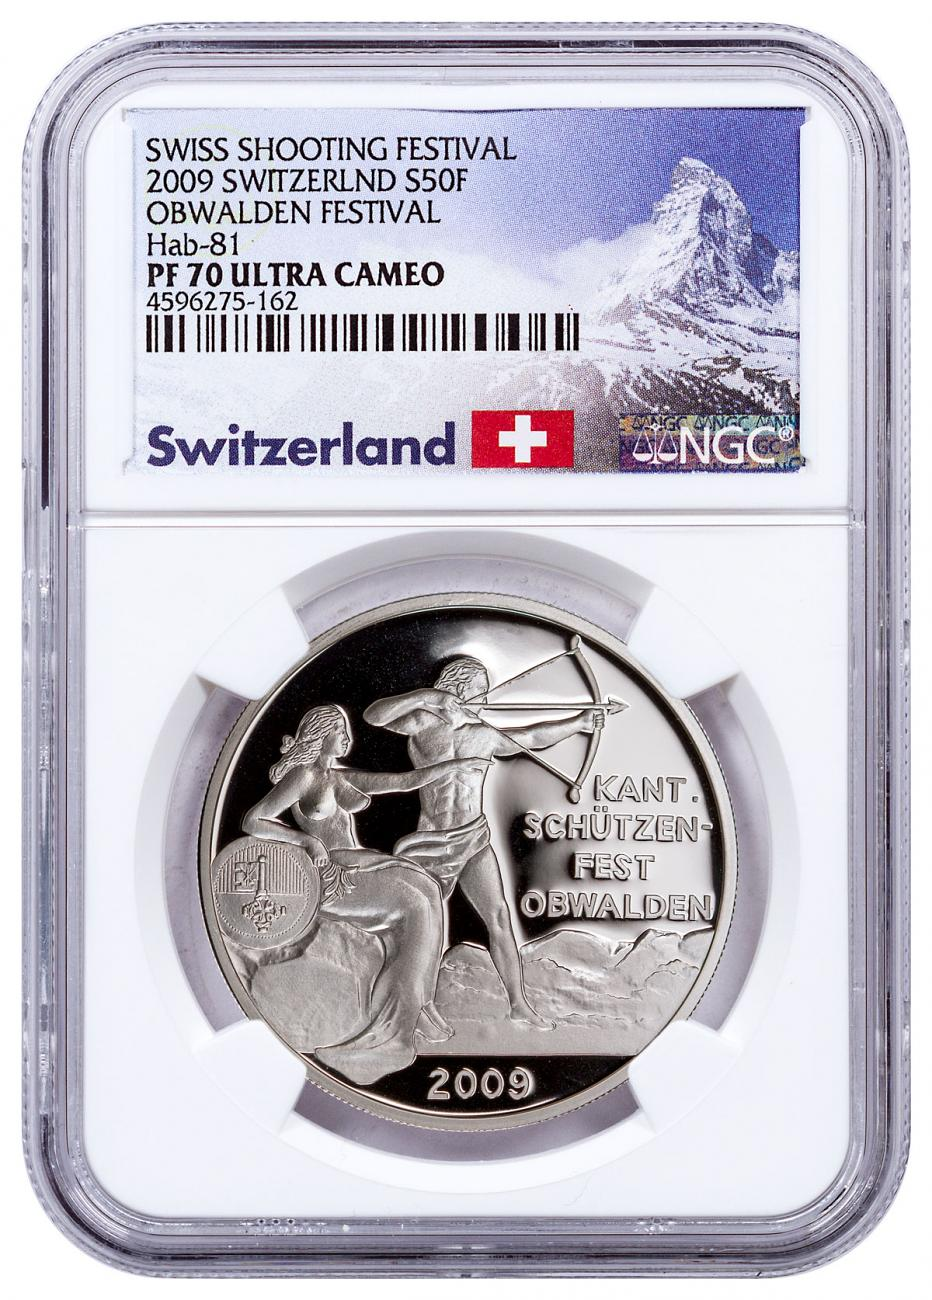 2009 Switzerland Shooting Festival Thaler - Obwalden Silver Proof Fr.50 NGC PF70 UC Exclusive Switzerland Label